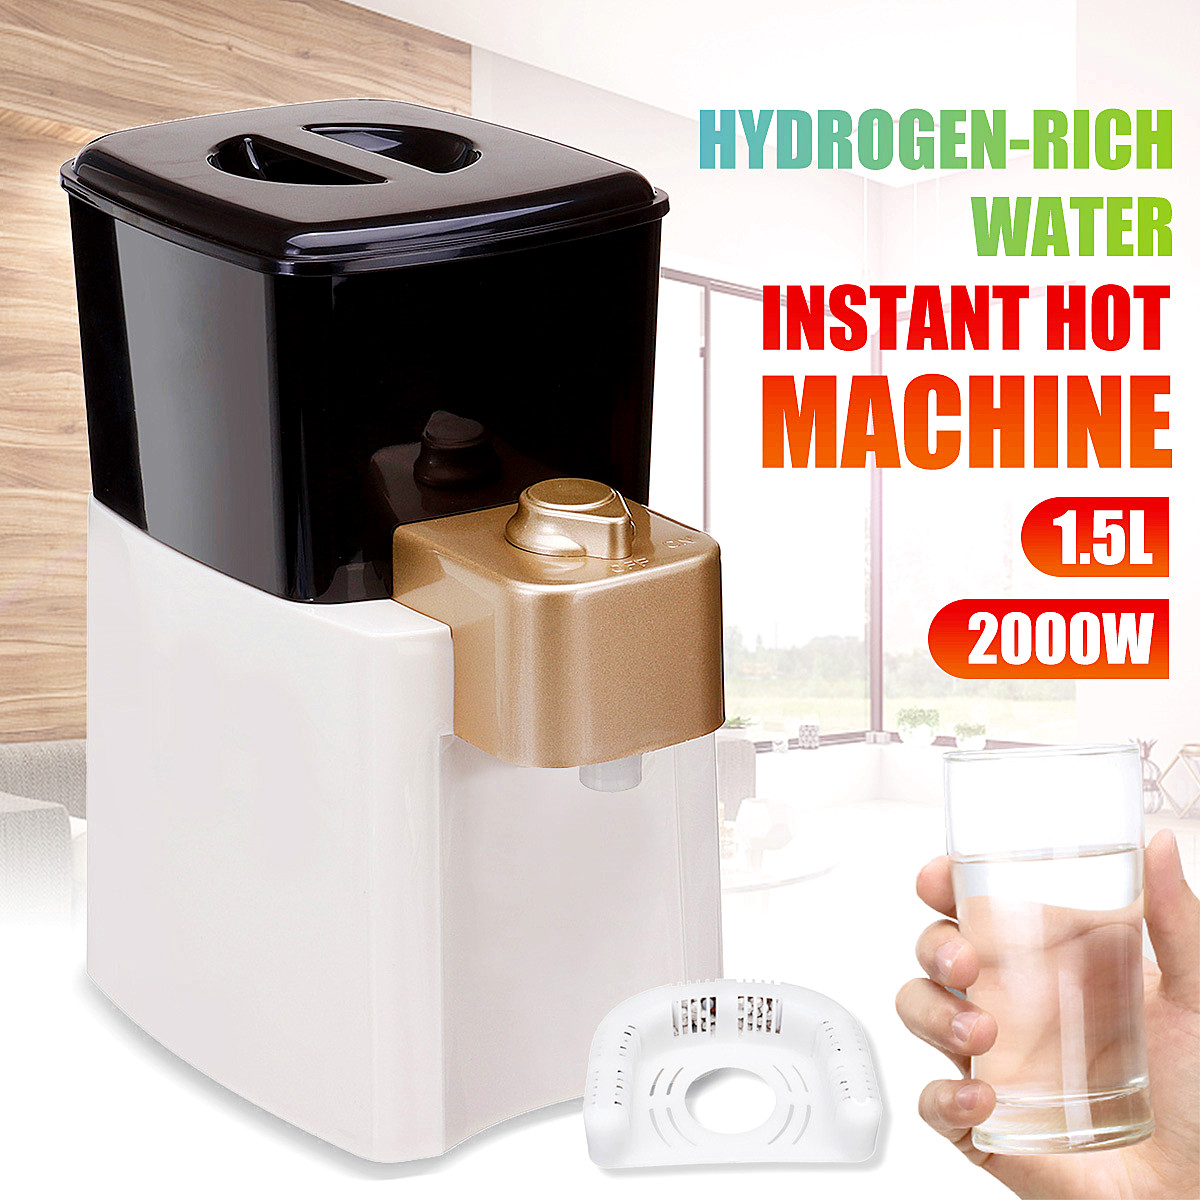 Newest 1.5L Desktops Household Hydrogen-rich RO Water Filter lonizer Purifier Dispenser Instant Hot Water Heating Heater BoilerNewest 1.5L Desktops Household Hydrogen-rich RO Water Filter lonizer Purifier Dispenser Instant Hot Water Heating Heater Boiler